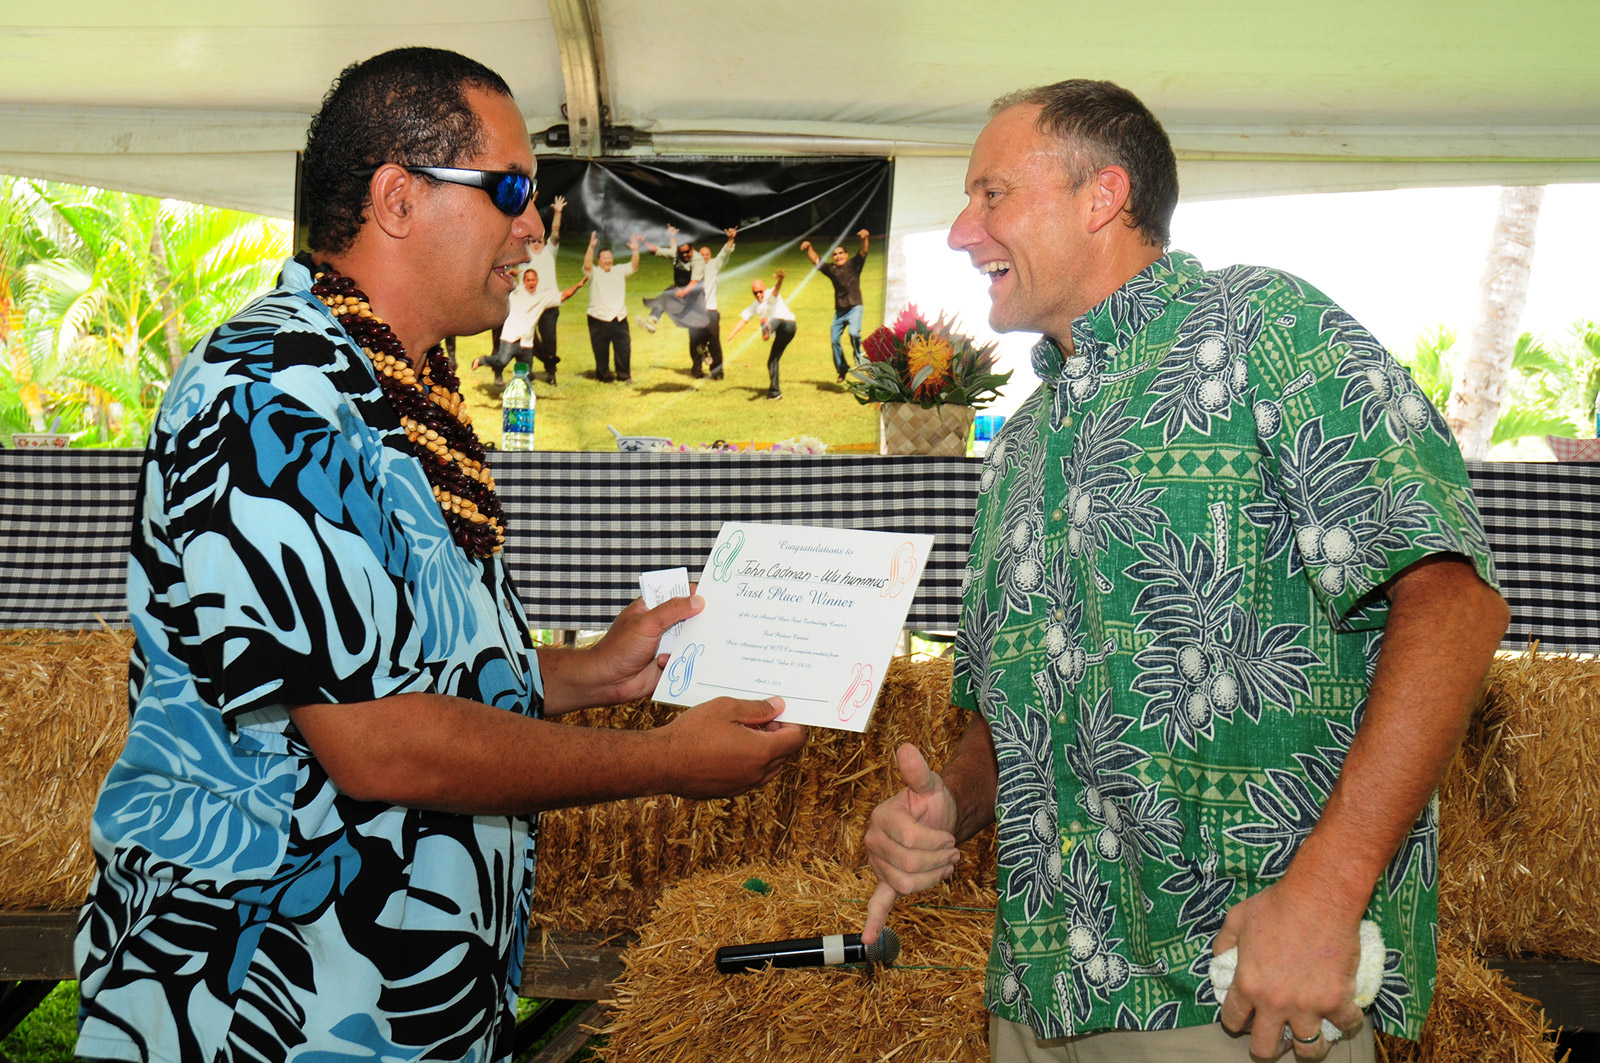 """Ulu was my inspiration,"" said John Cadman about his winning recipe, Maui `Ulu Hummus. ""It's a very versatile ingredient. I've been making pies with it, and thought hummus was a natural."" Pictured: Recipe contest judge Kamaunu Kahaialii presents Cadman with his 1st place certificate."